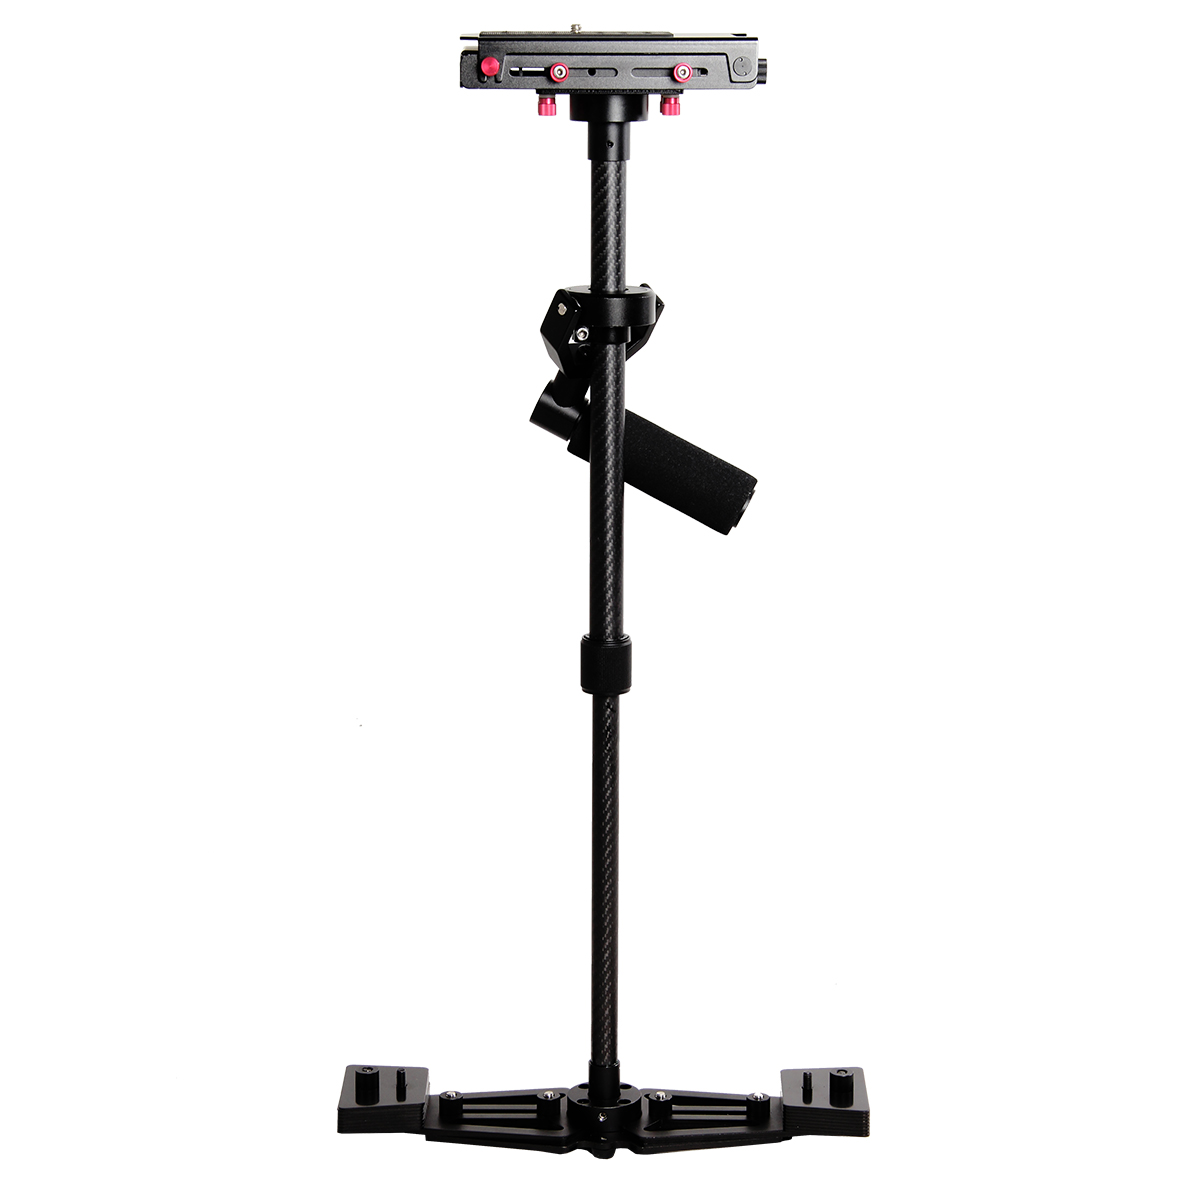 YELANGU Camera Accessories Cheap Handheld DSLR Camera Stabilizer Steadycam